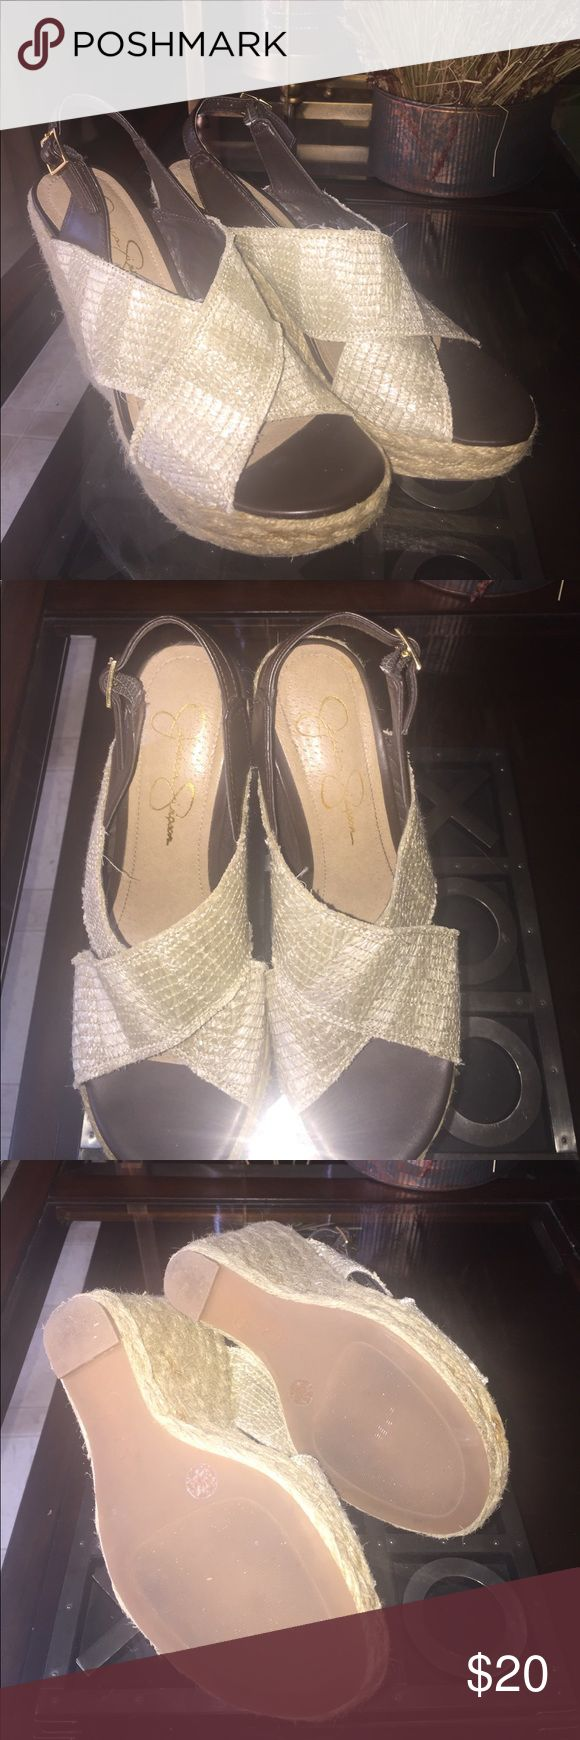 Jessica Simpson Wedges Straw and brown wedges Jessica Simpson Shoes Wedges